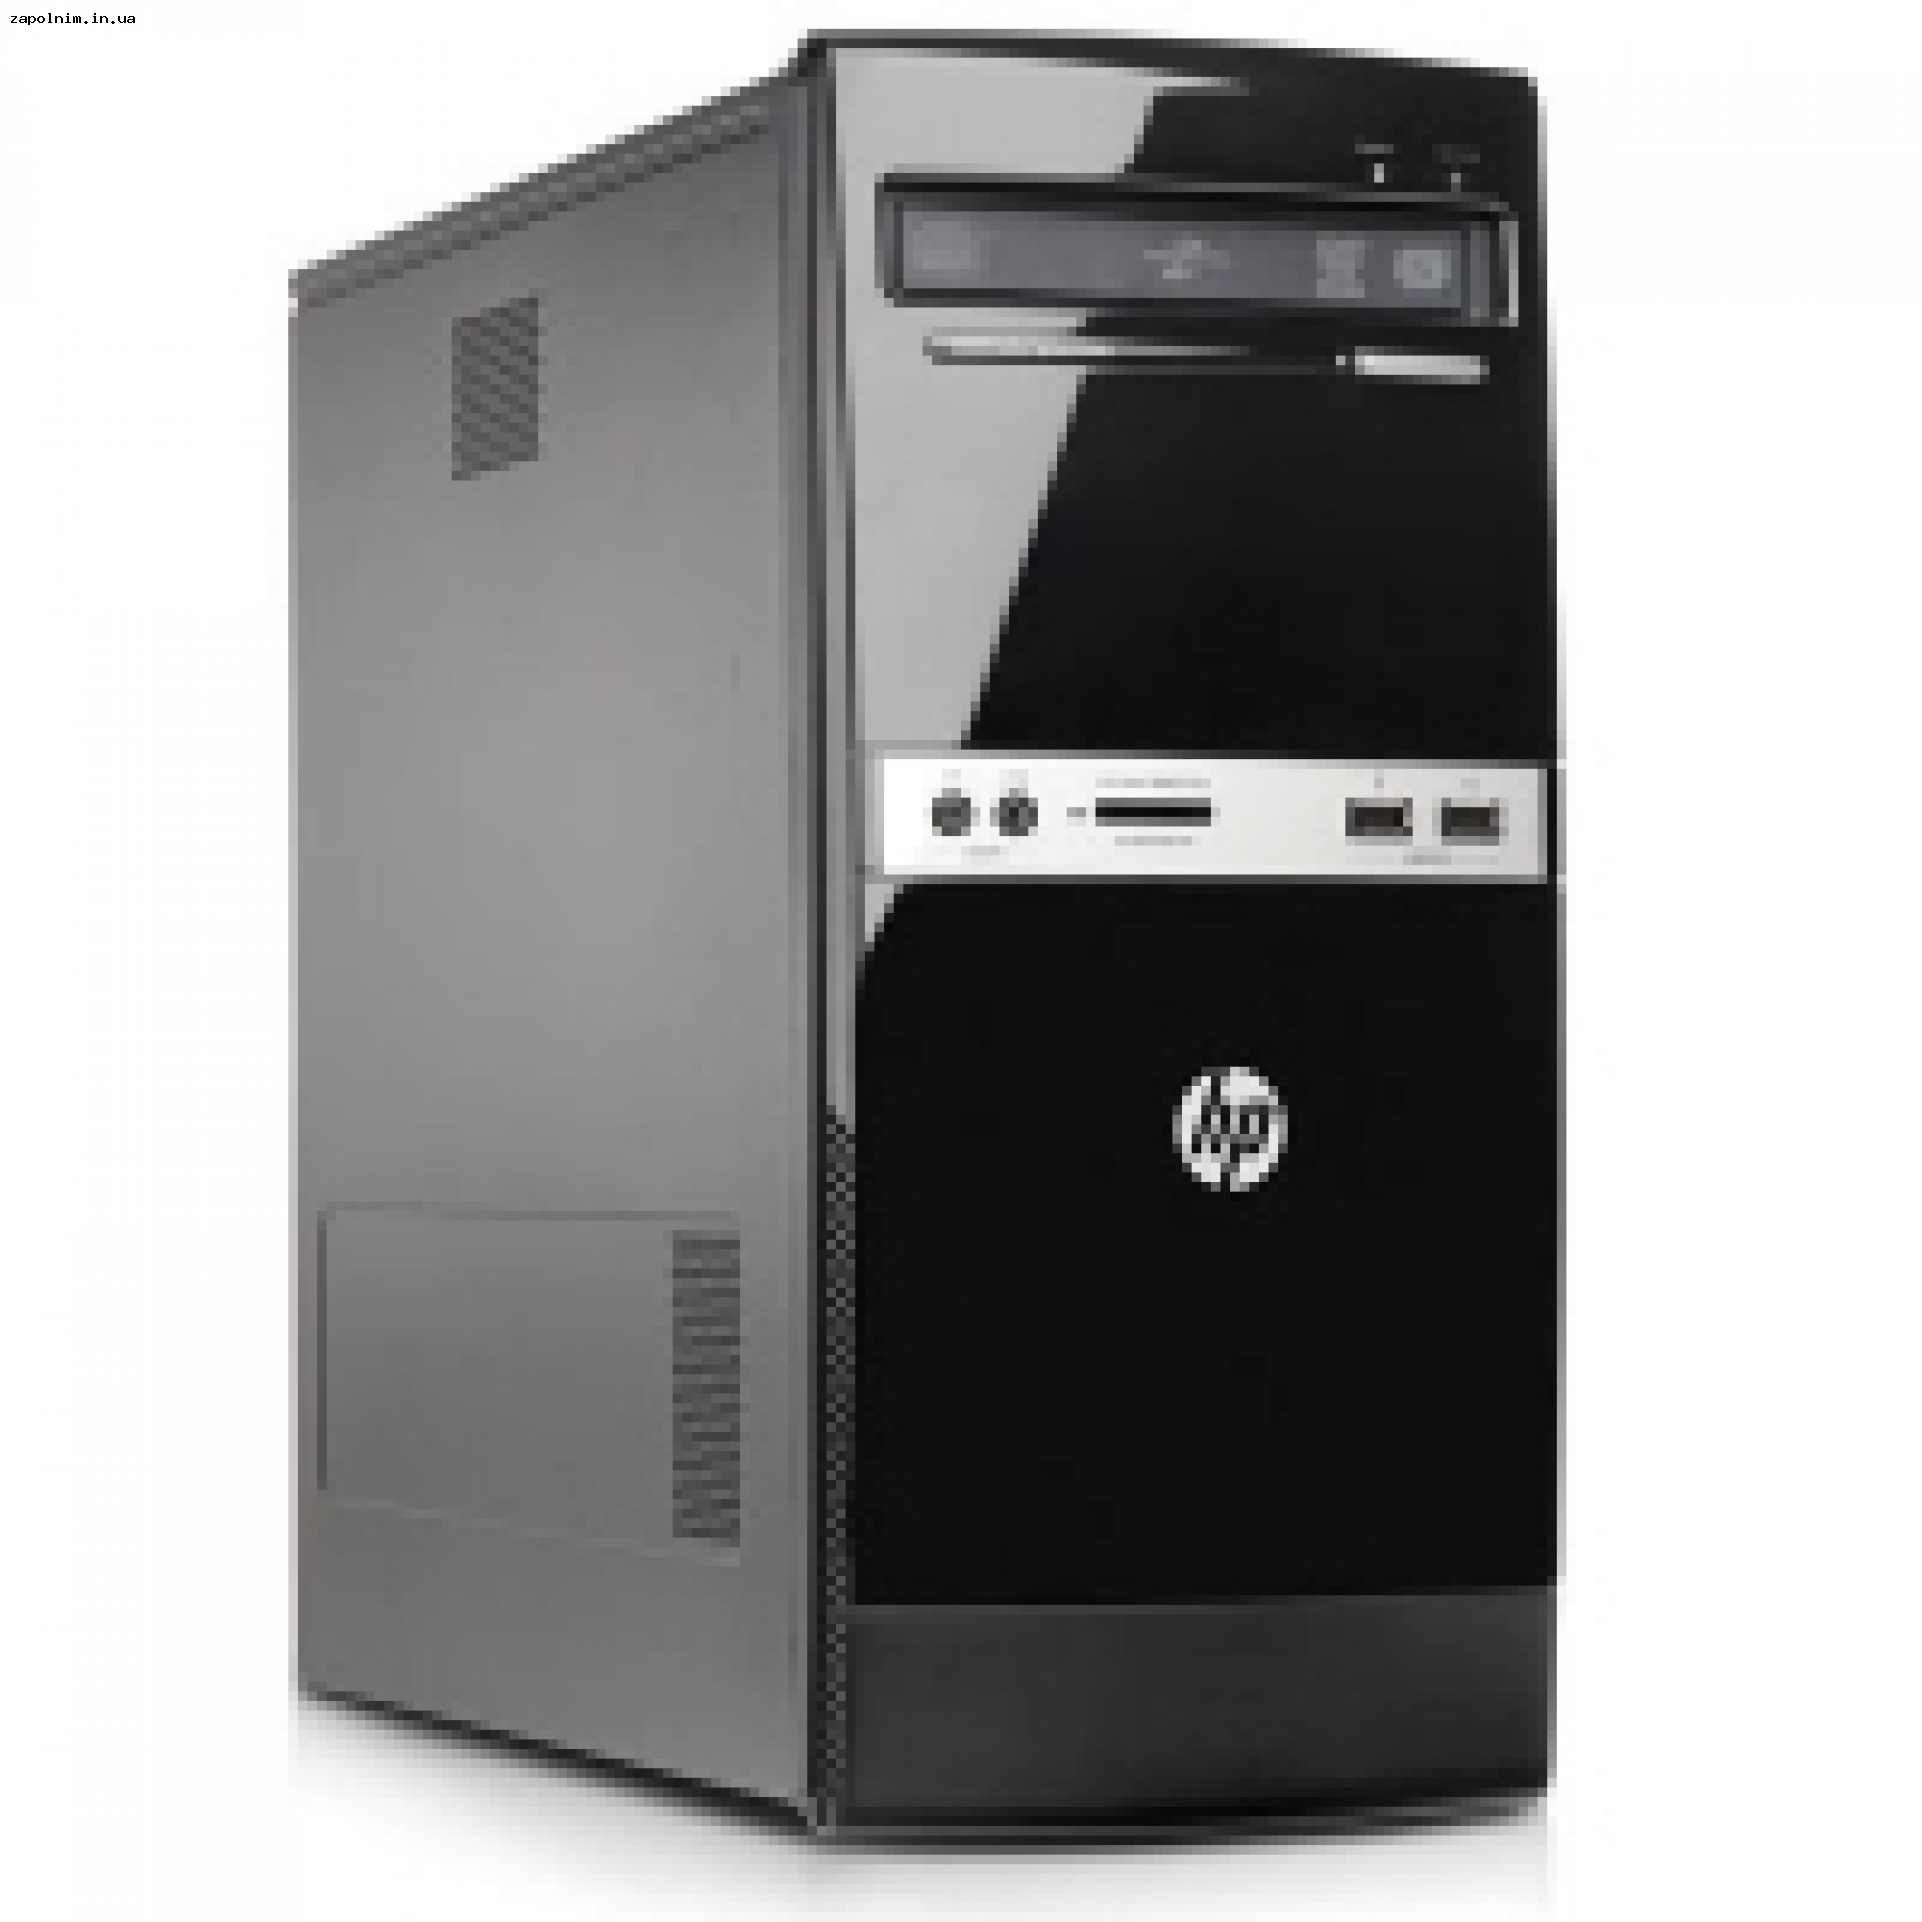 Системный блок Bundle HP 500B MT XP045EA